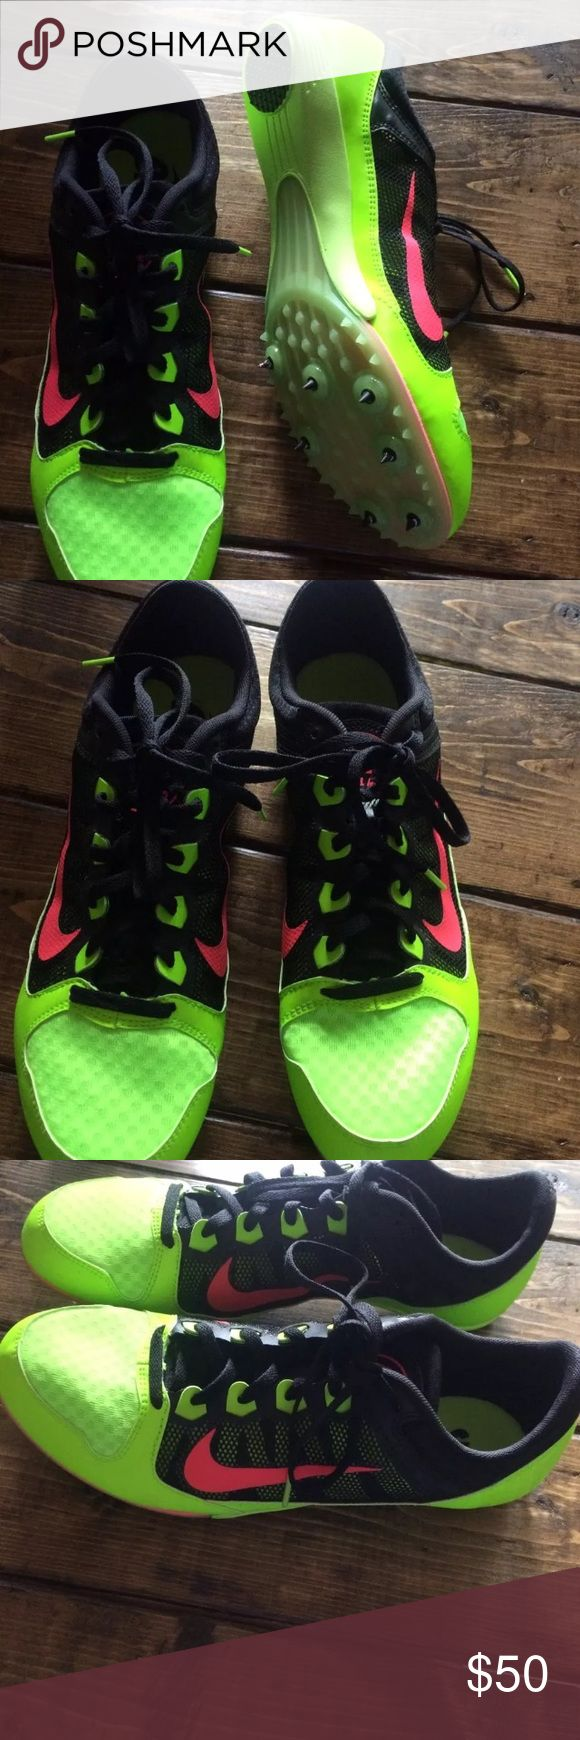 EUC Nike Neon Running Shoes 11 Green Pink Awesome and versatile running shoes with spikes. Size 11 Nike Shoes Athletic Shoes